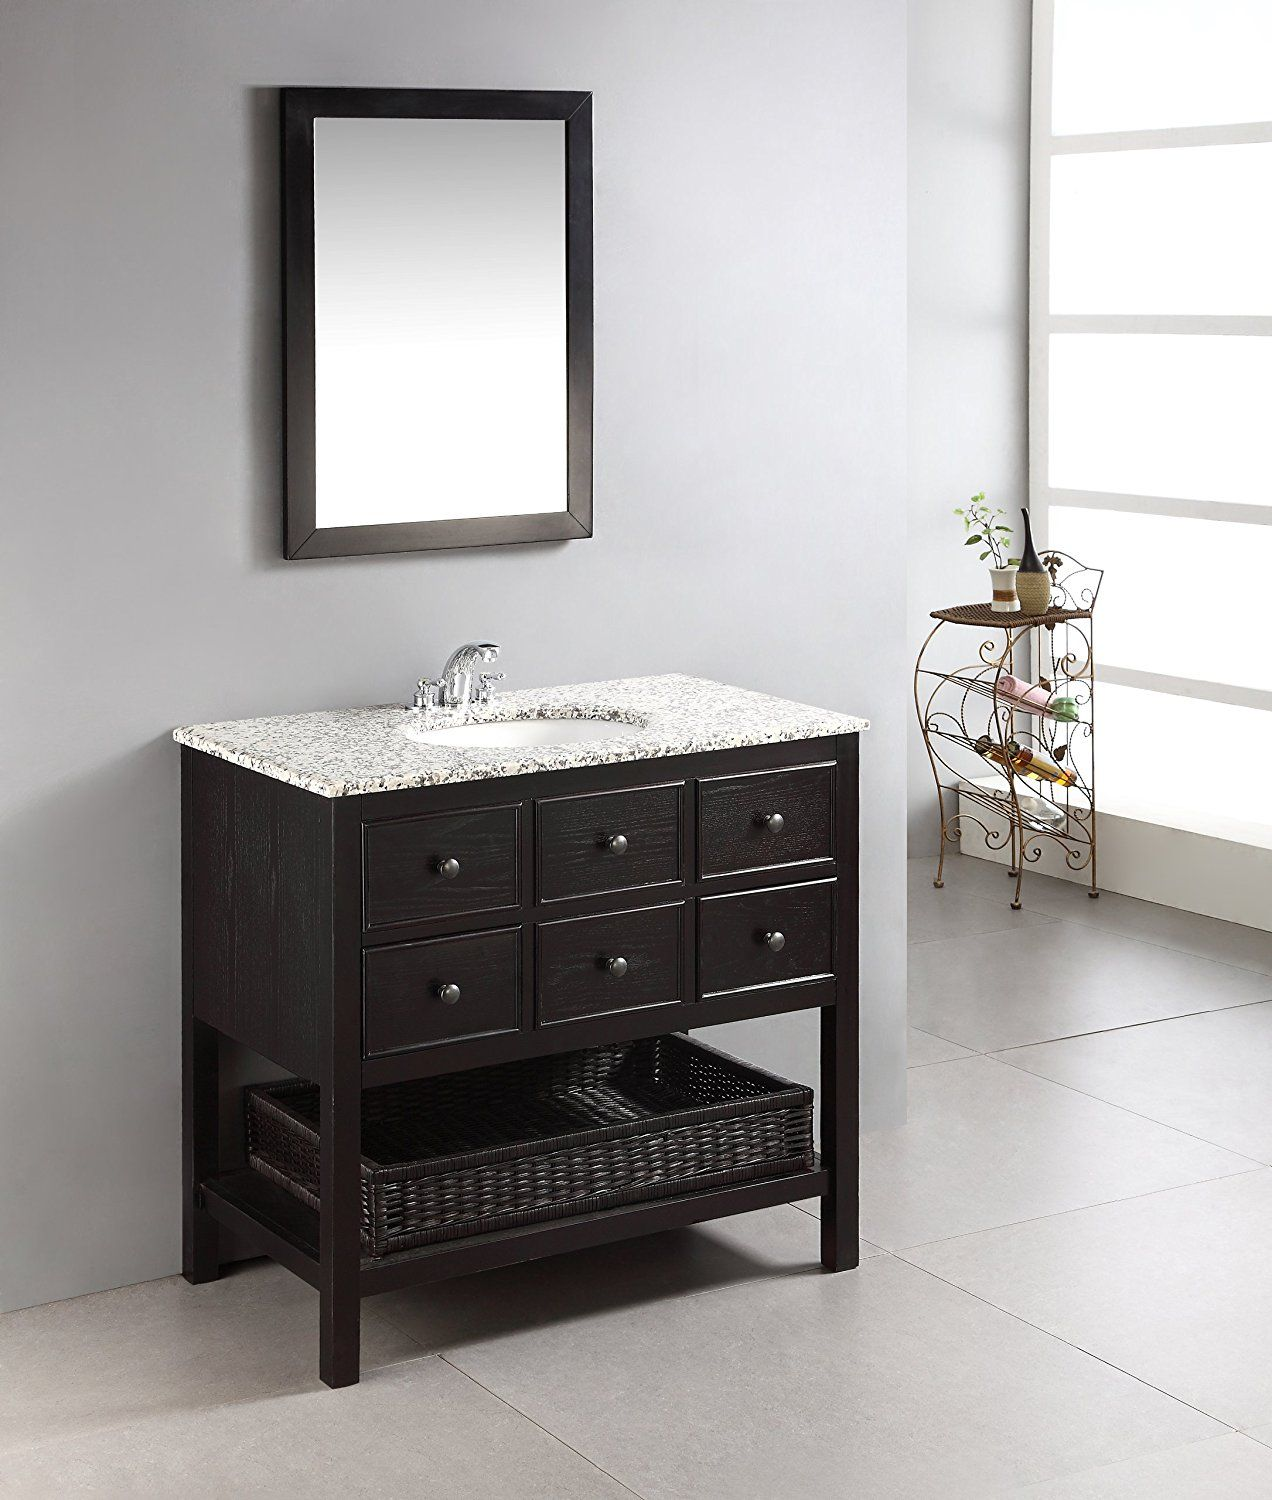 bath categories white vanity vanities rustic home p the modern depot canada naples more inch en bathroom cabinet in